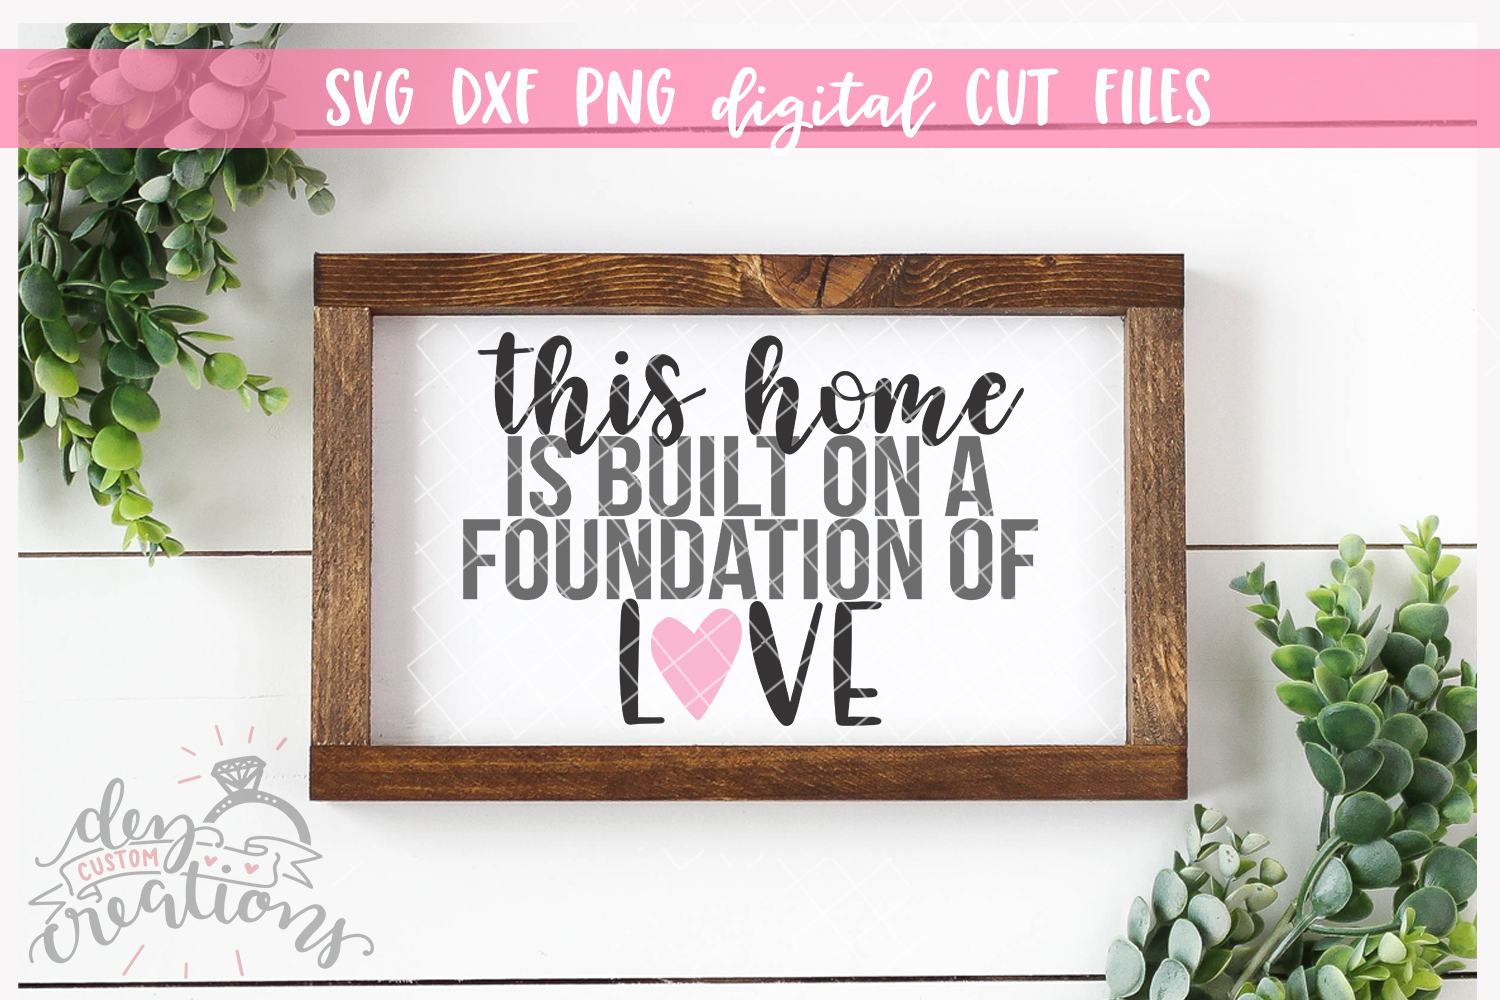 This Home Is Built On a Foundation of Love - SVG DXF PNG Cut example image 2